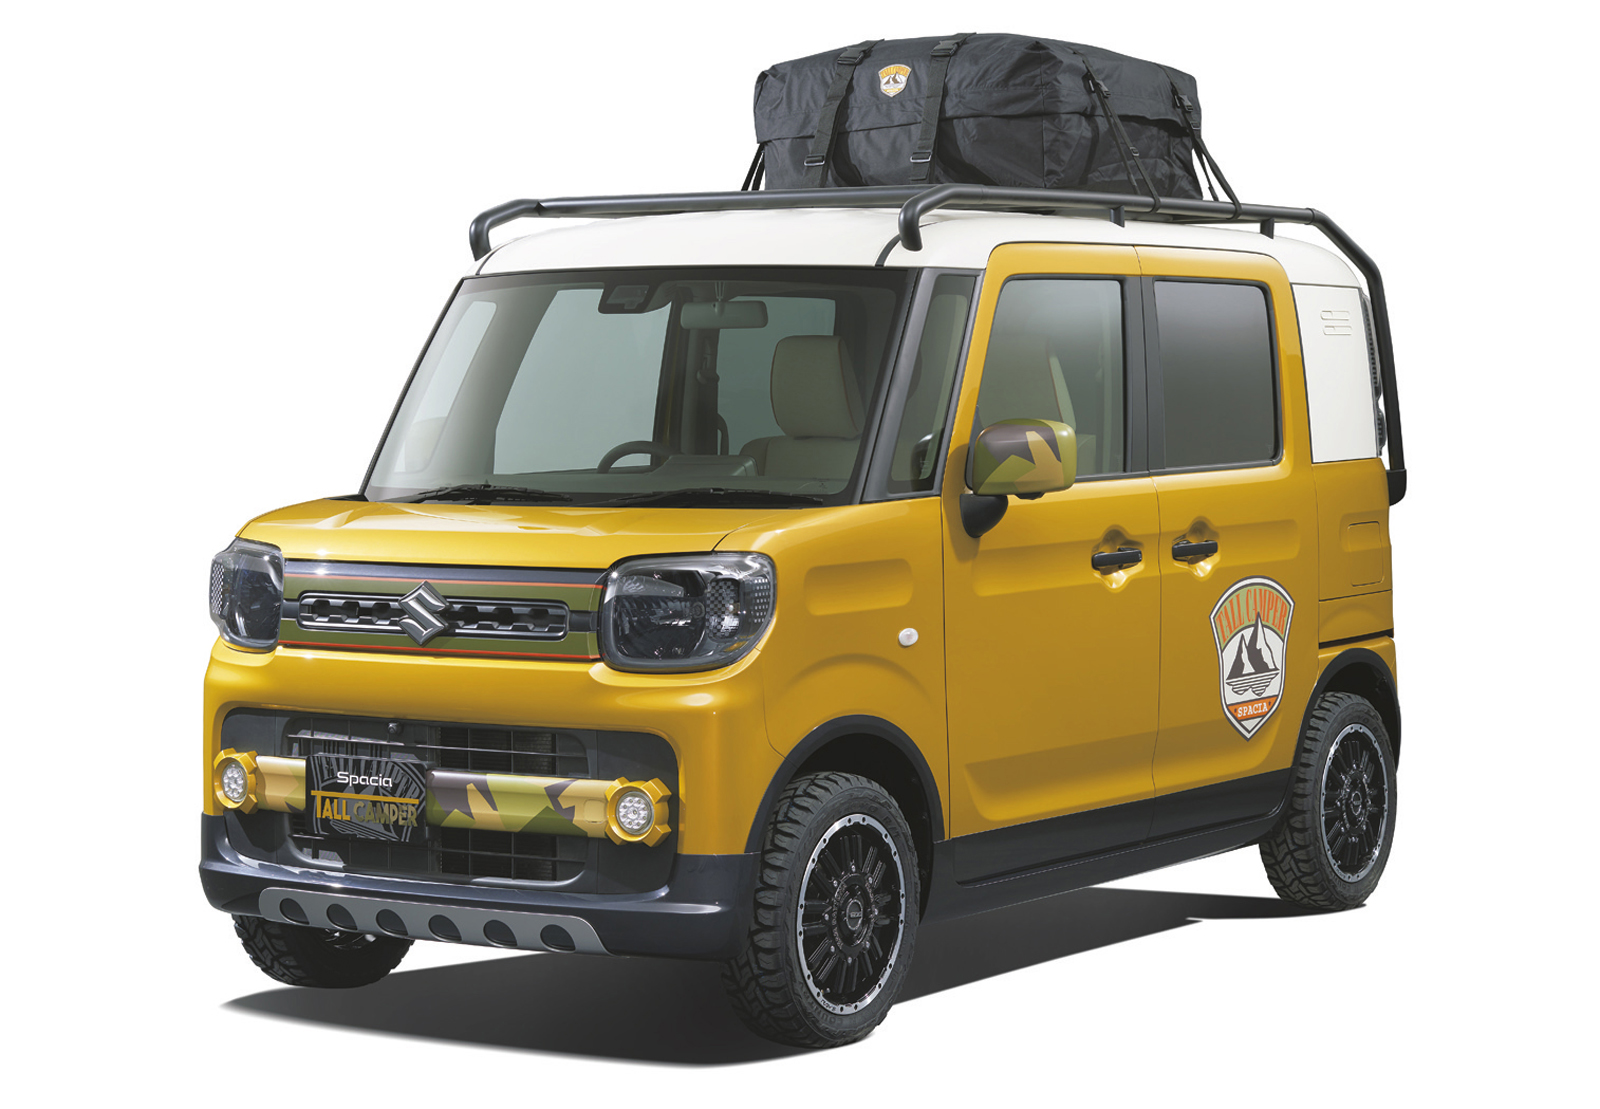 Suzuki Jimny 2018 >> Suzuki Xbee Could Be The Coolest Thing At The 2018 Tokyo Salon | Carscoops